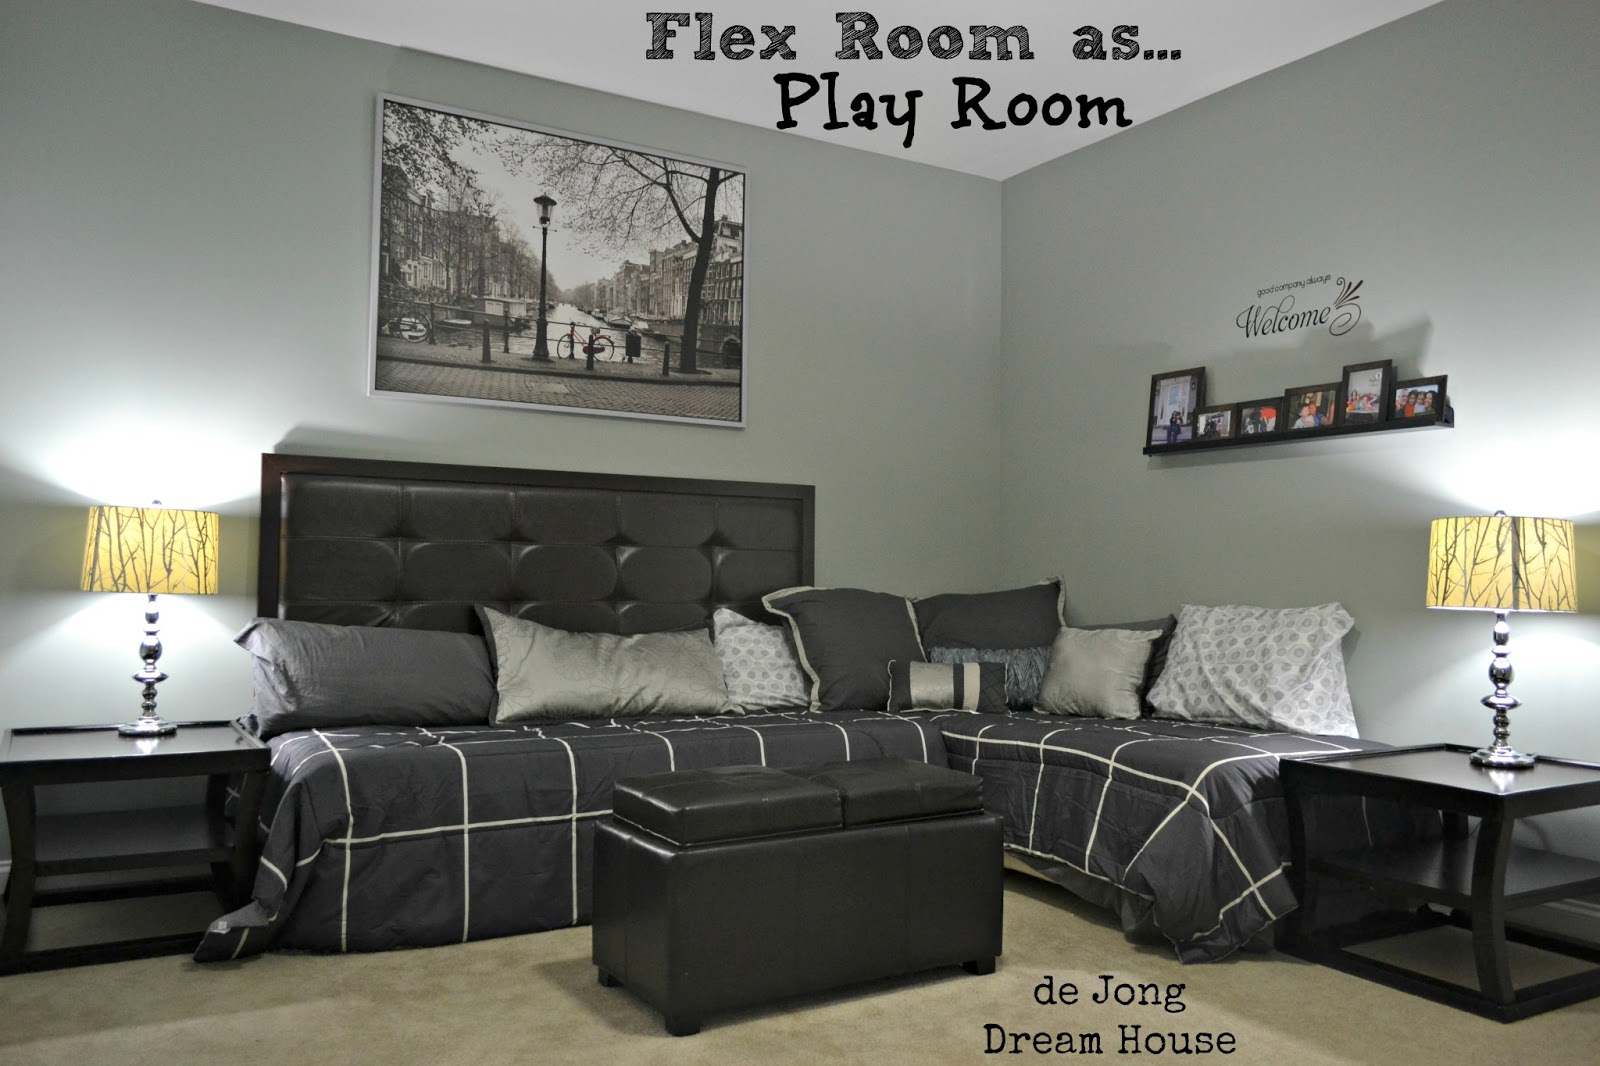 3 in 1 flex room guest suite play room room for two for Teenage playroom design ideas